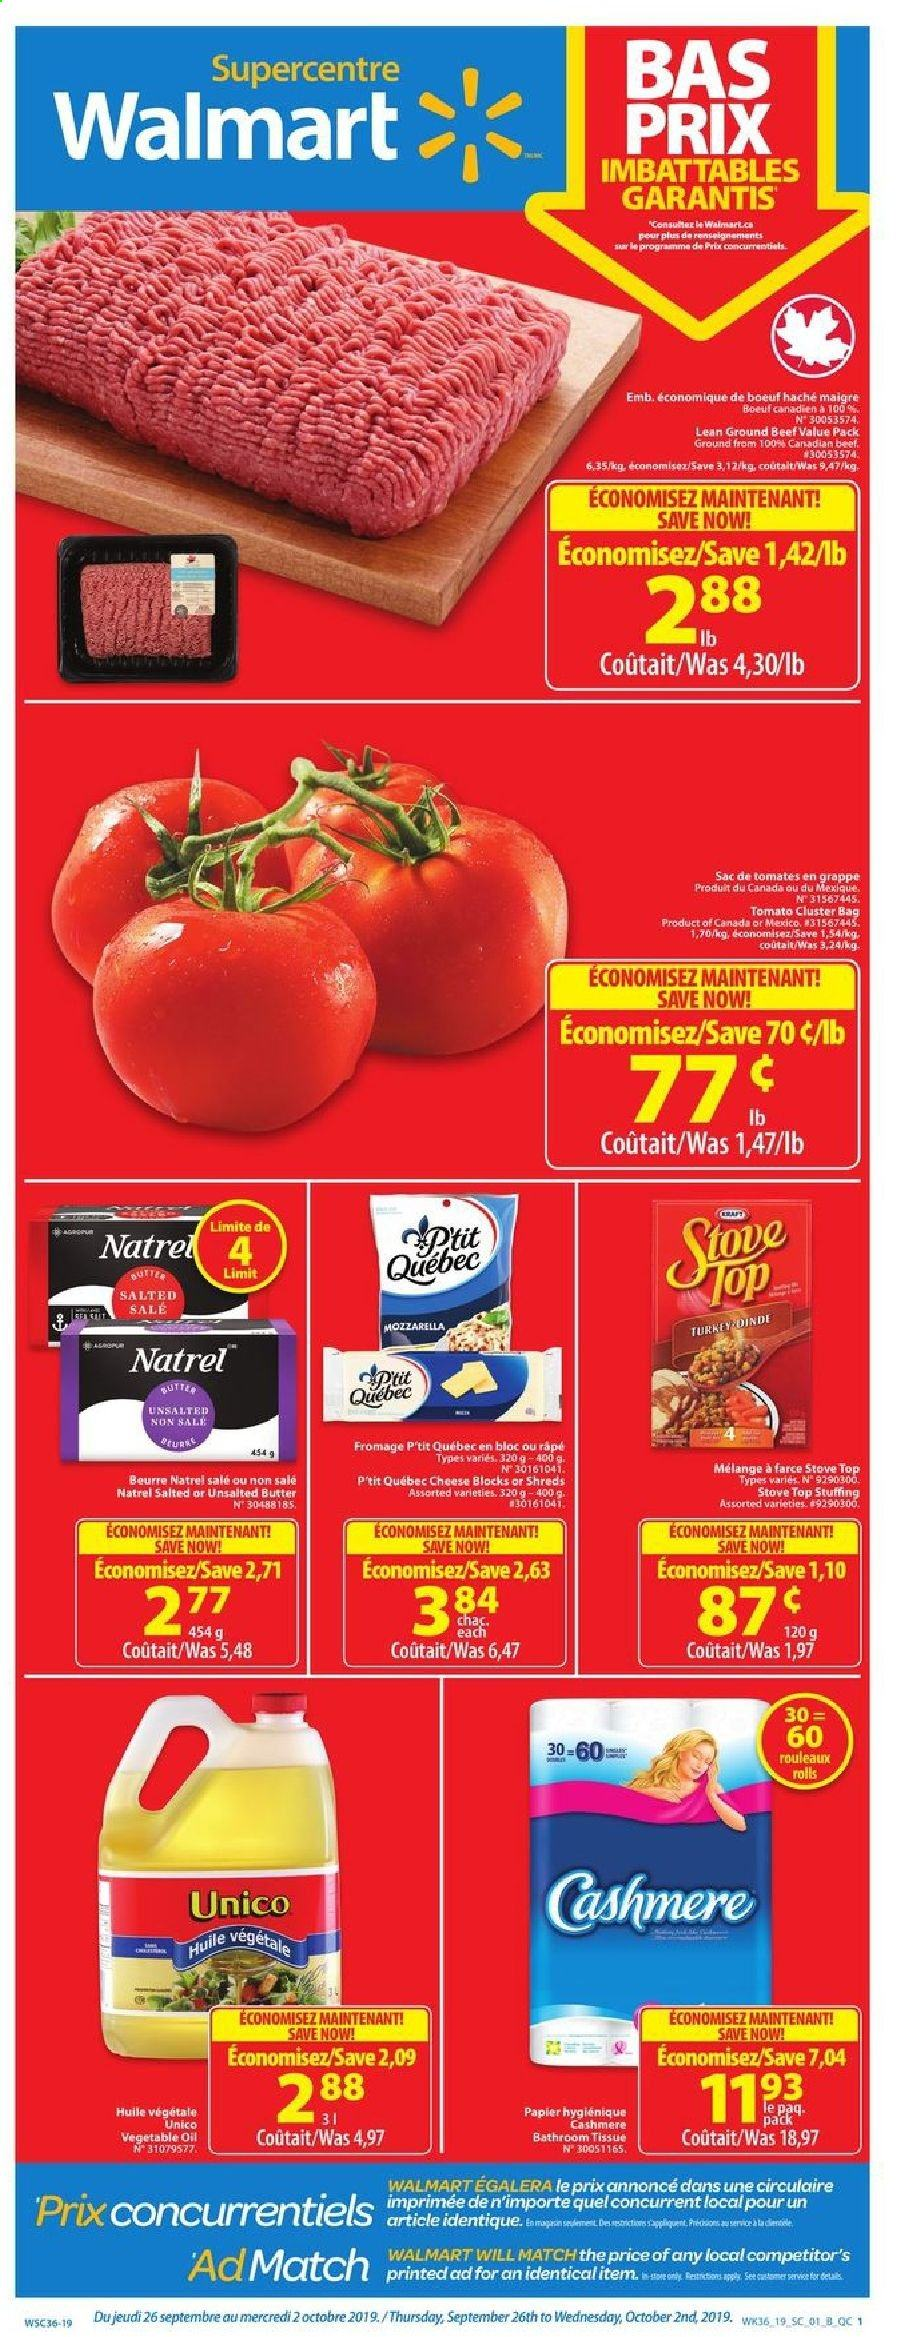 Walmart Flyer  - September 26, 2019 - October 02, 2019. Page 1.